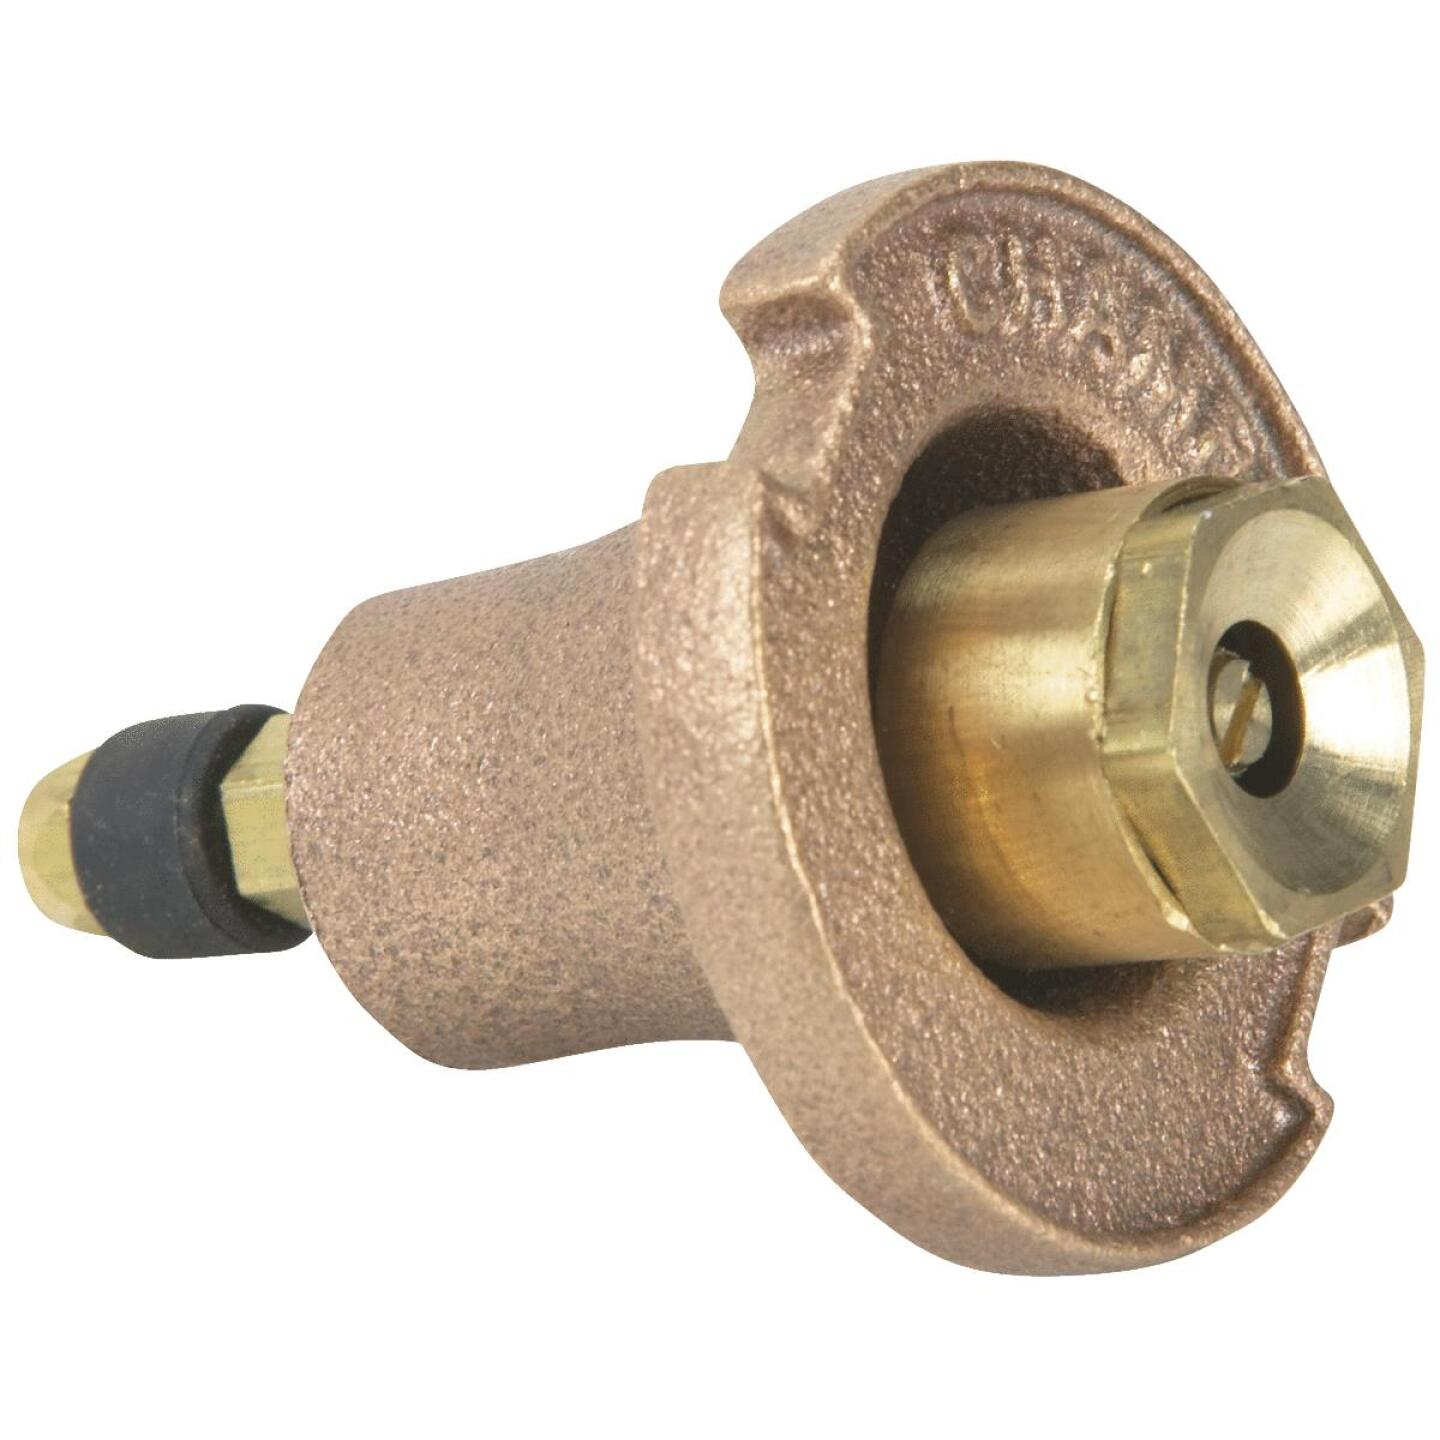 Champion 1.25 In. Full Circle Brass Pop-Up Sprinkler with Brass Nozzle Image 1